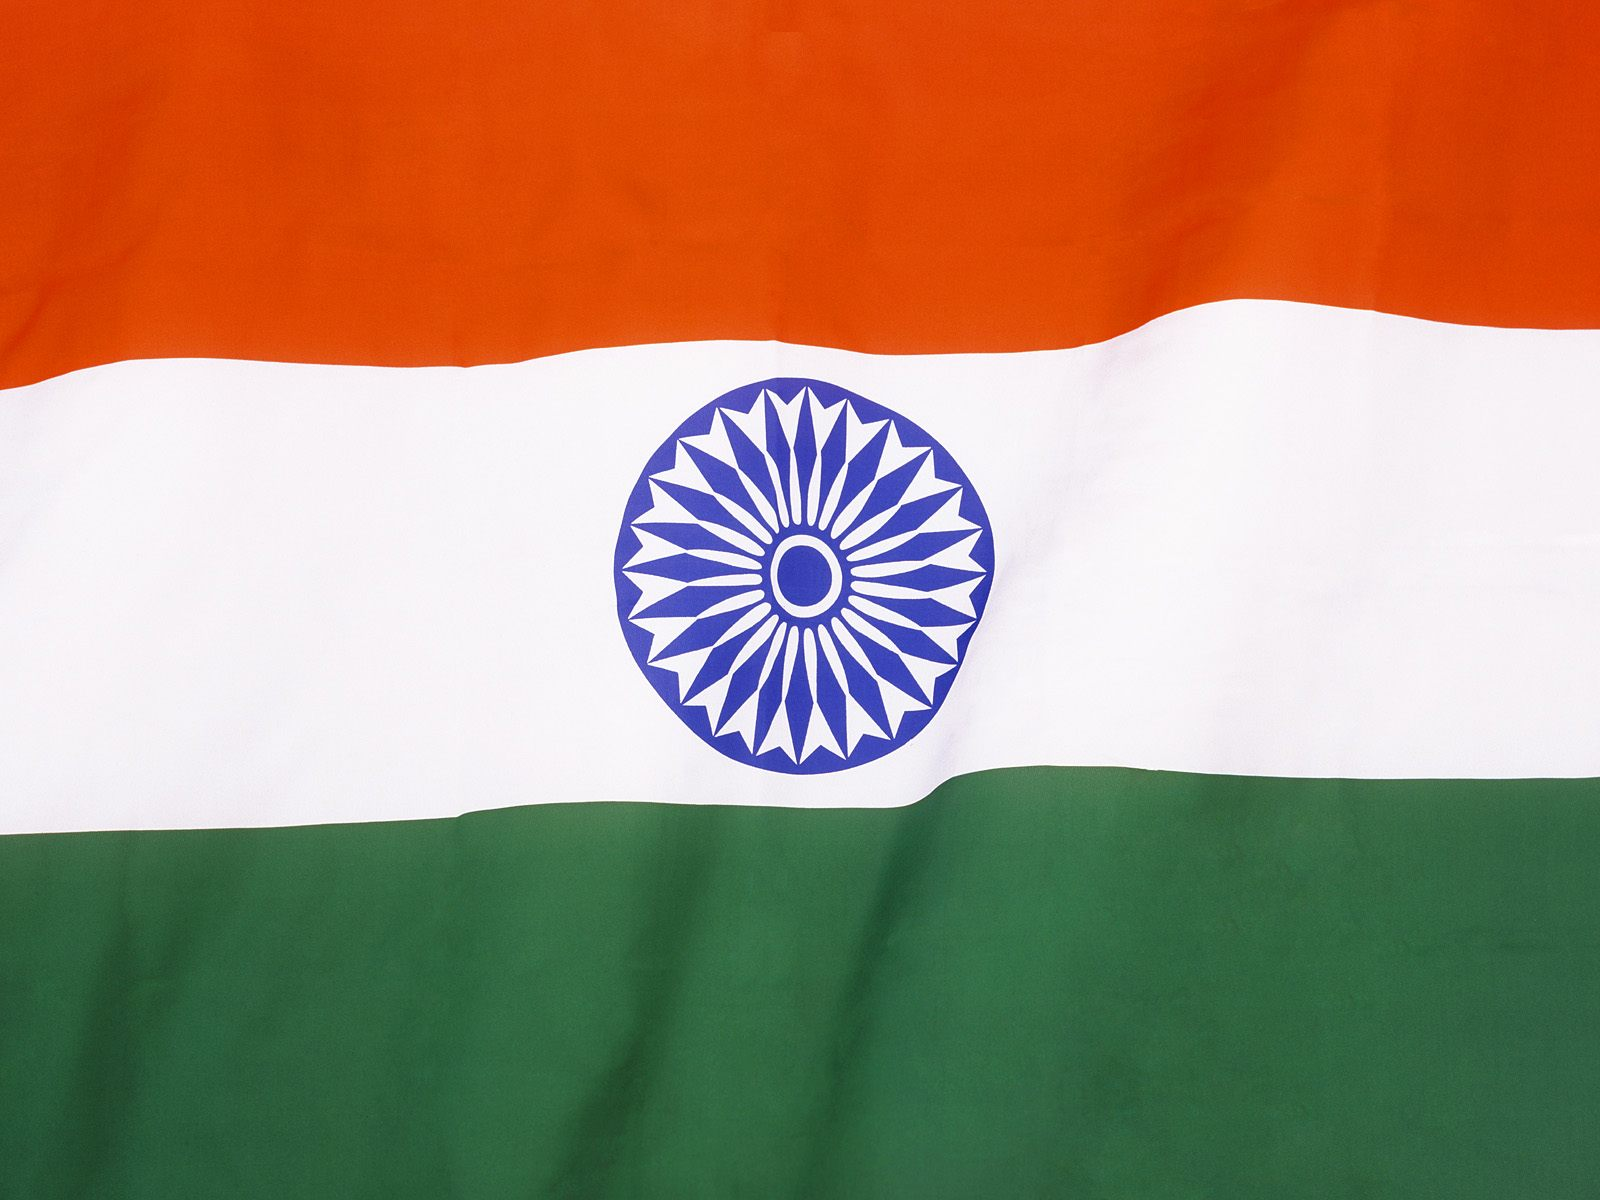 Indian Flag Images Hd720p: Indian National Flag Wallpaper 3D